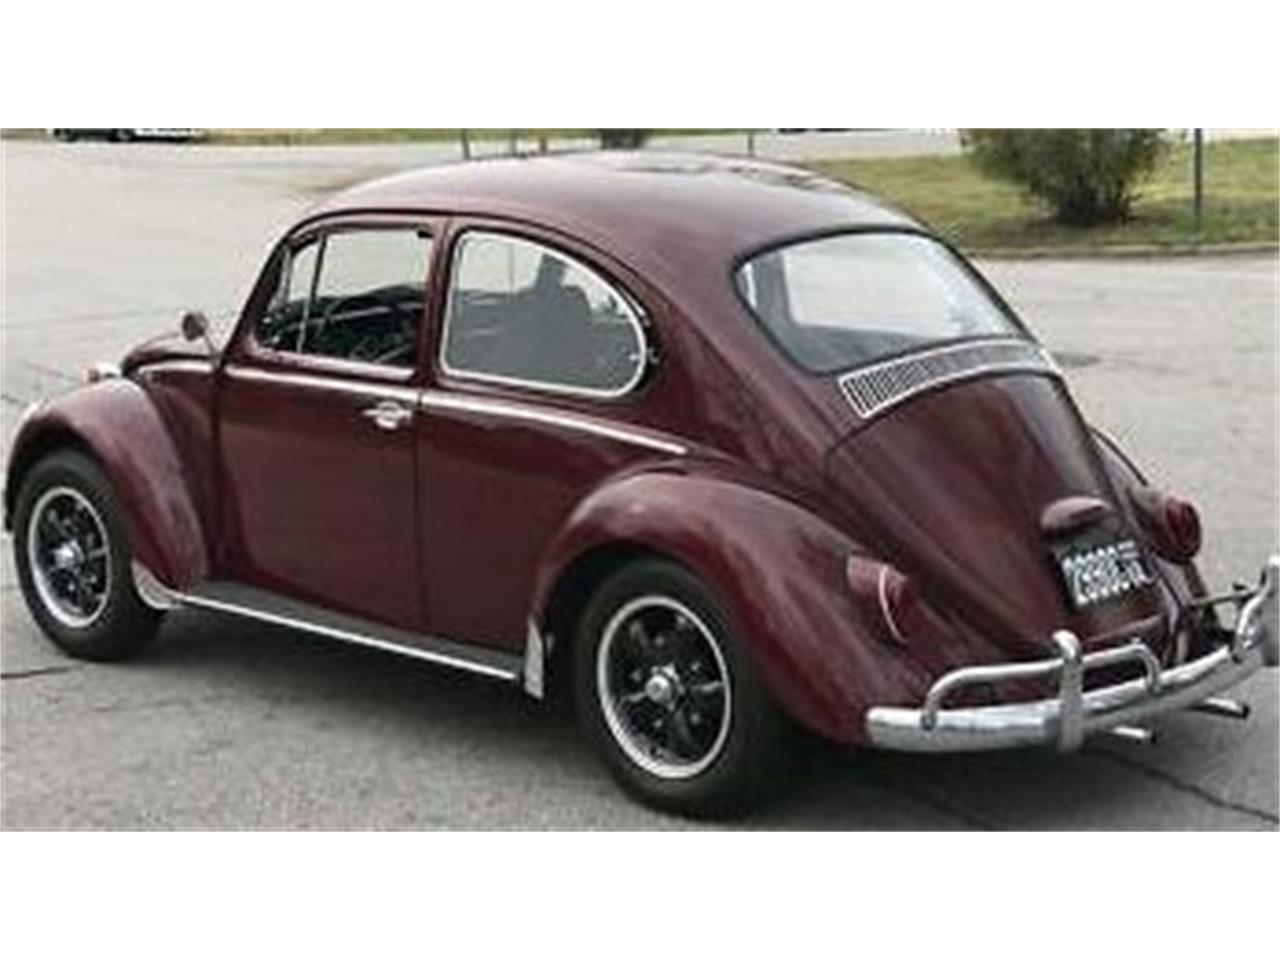 Large Picture of '66 Beetle located in Cadillac Michigan - $11,995.00 - N8I8